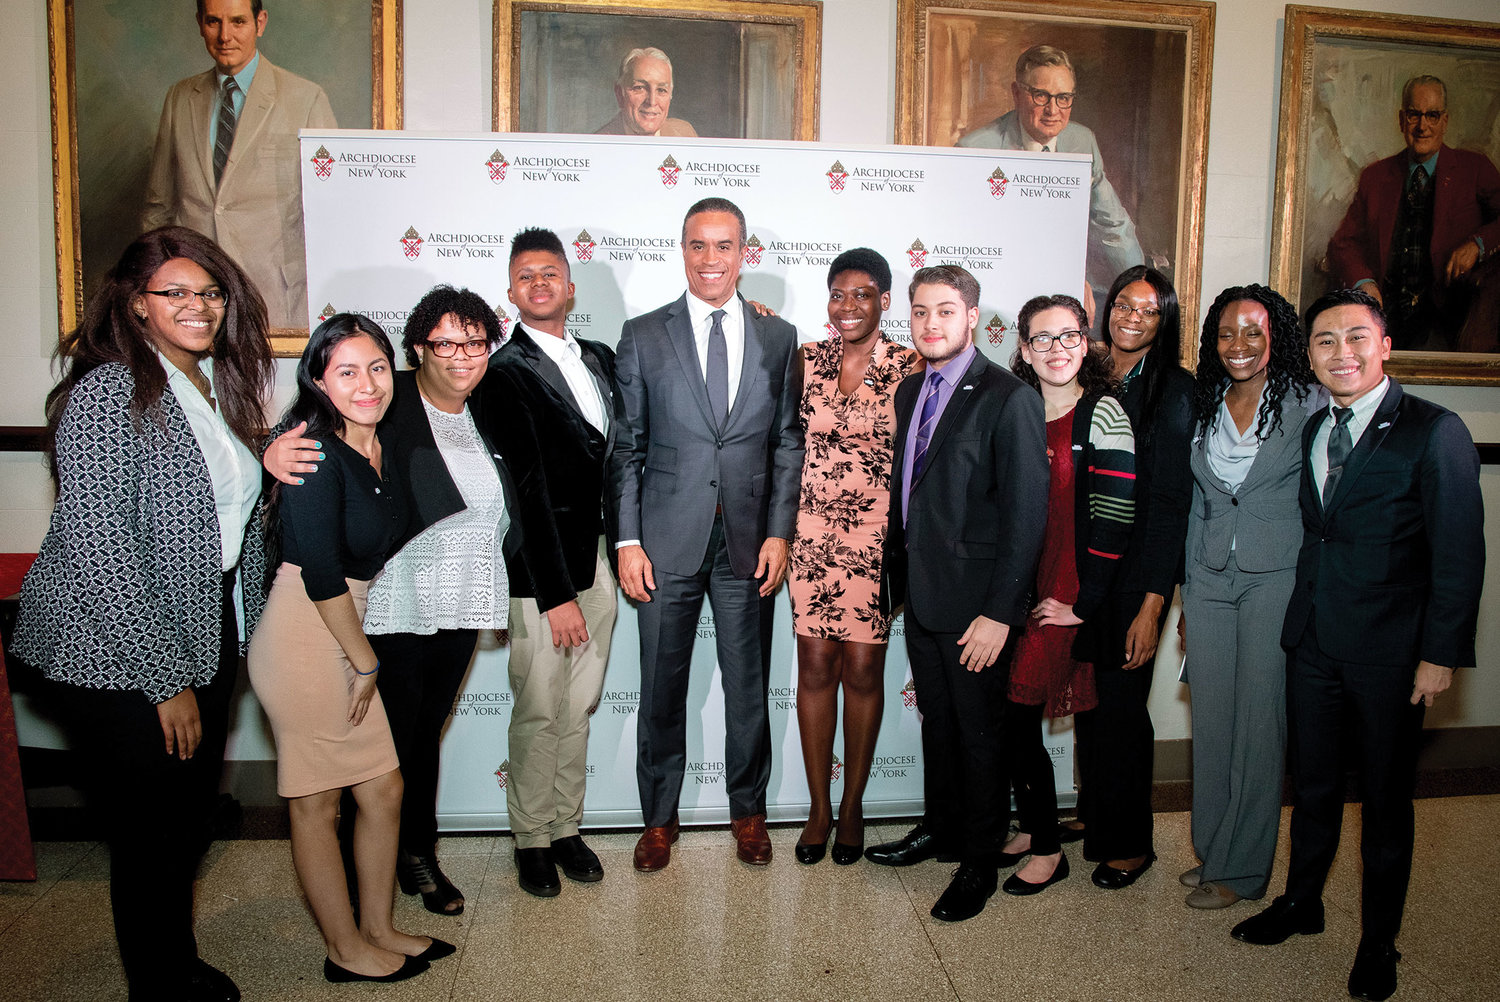 Maurice DuBois, an anchor with WCBS-TV, served as master of ceremonies; he is joined by current recipients of the college scholarship award.